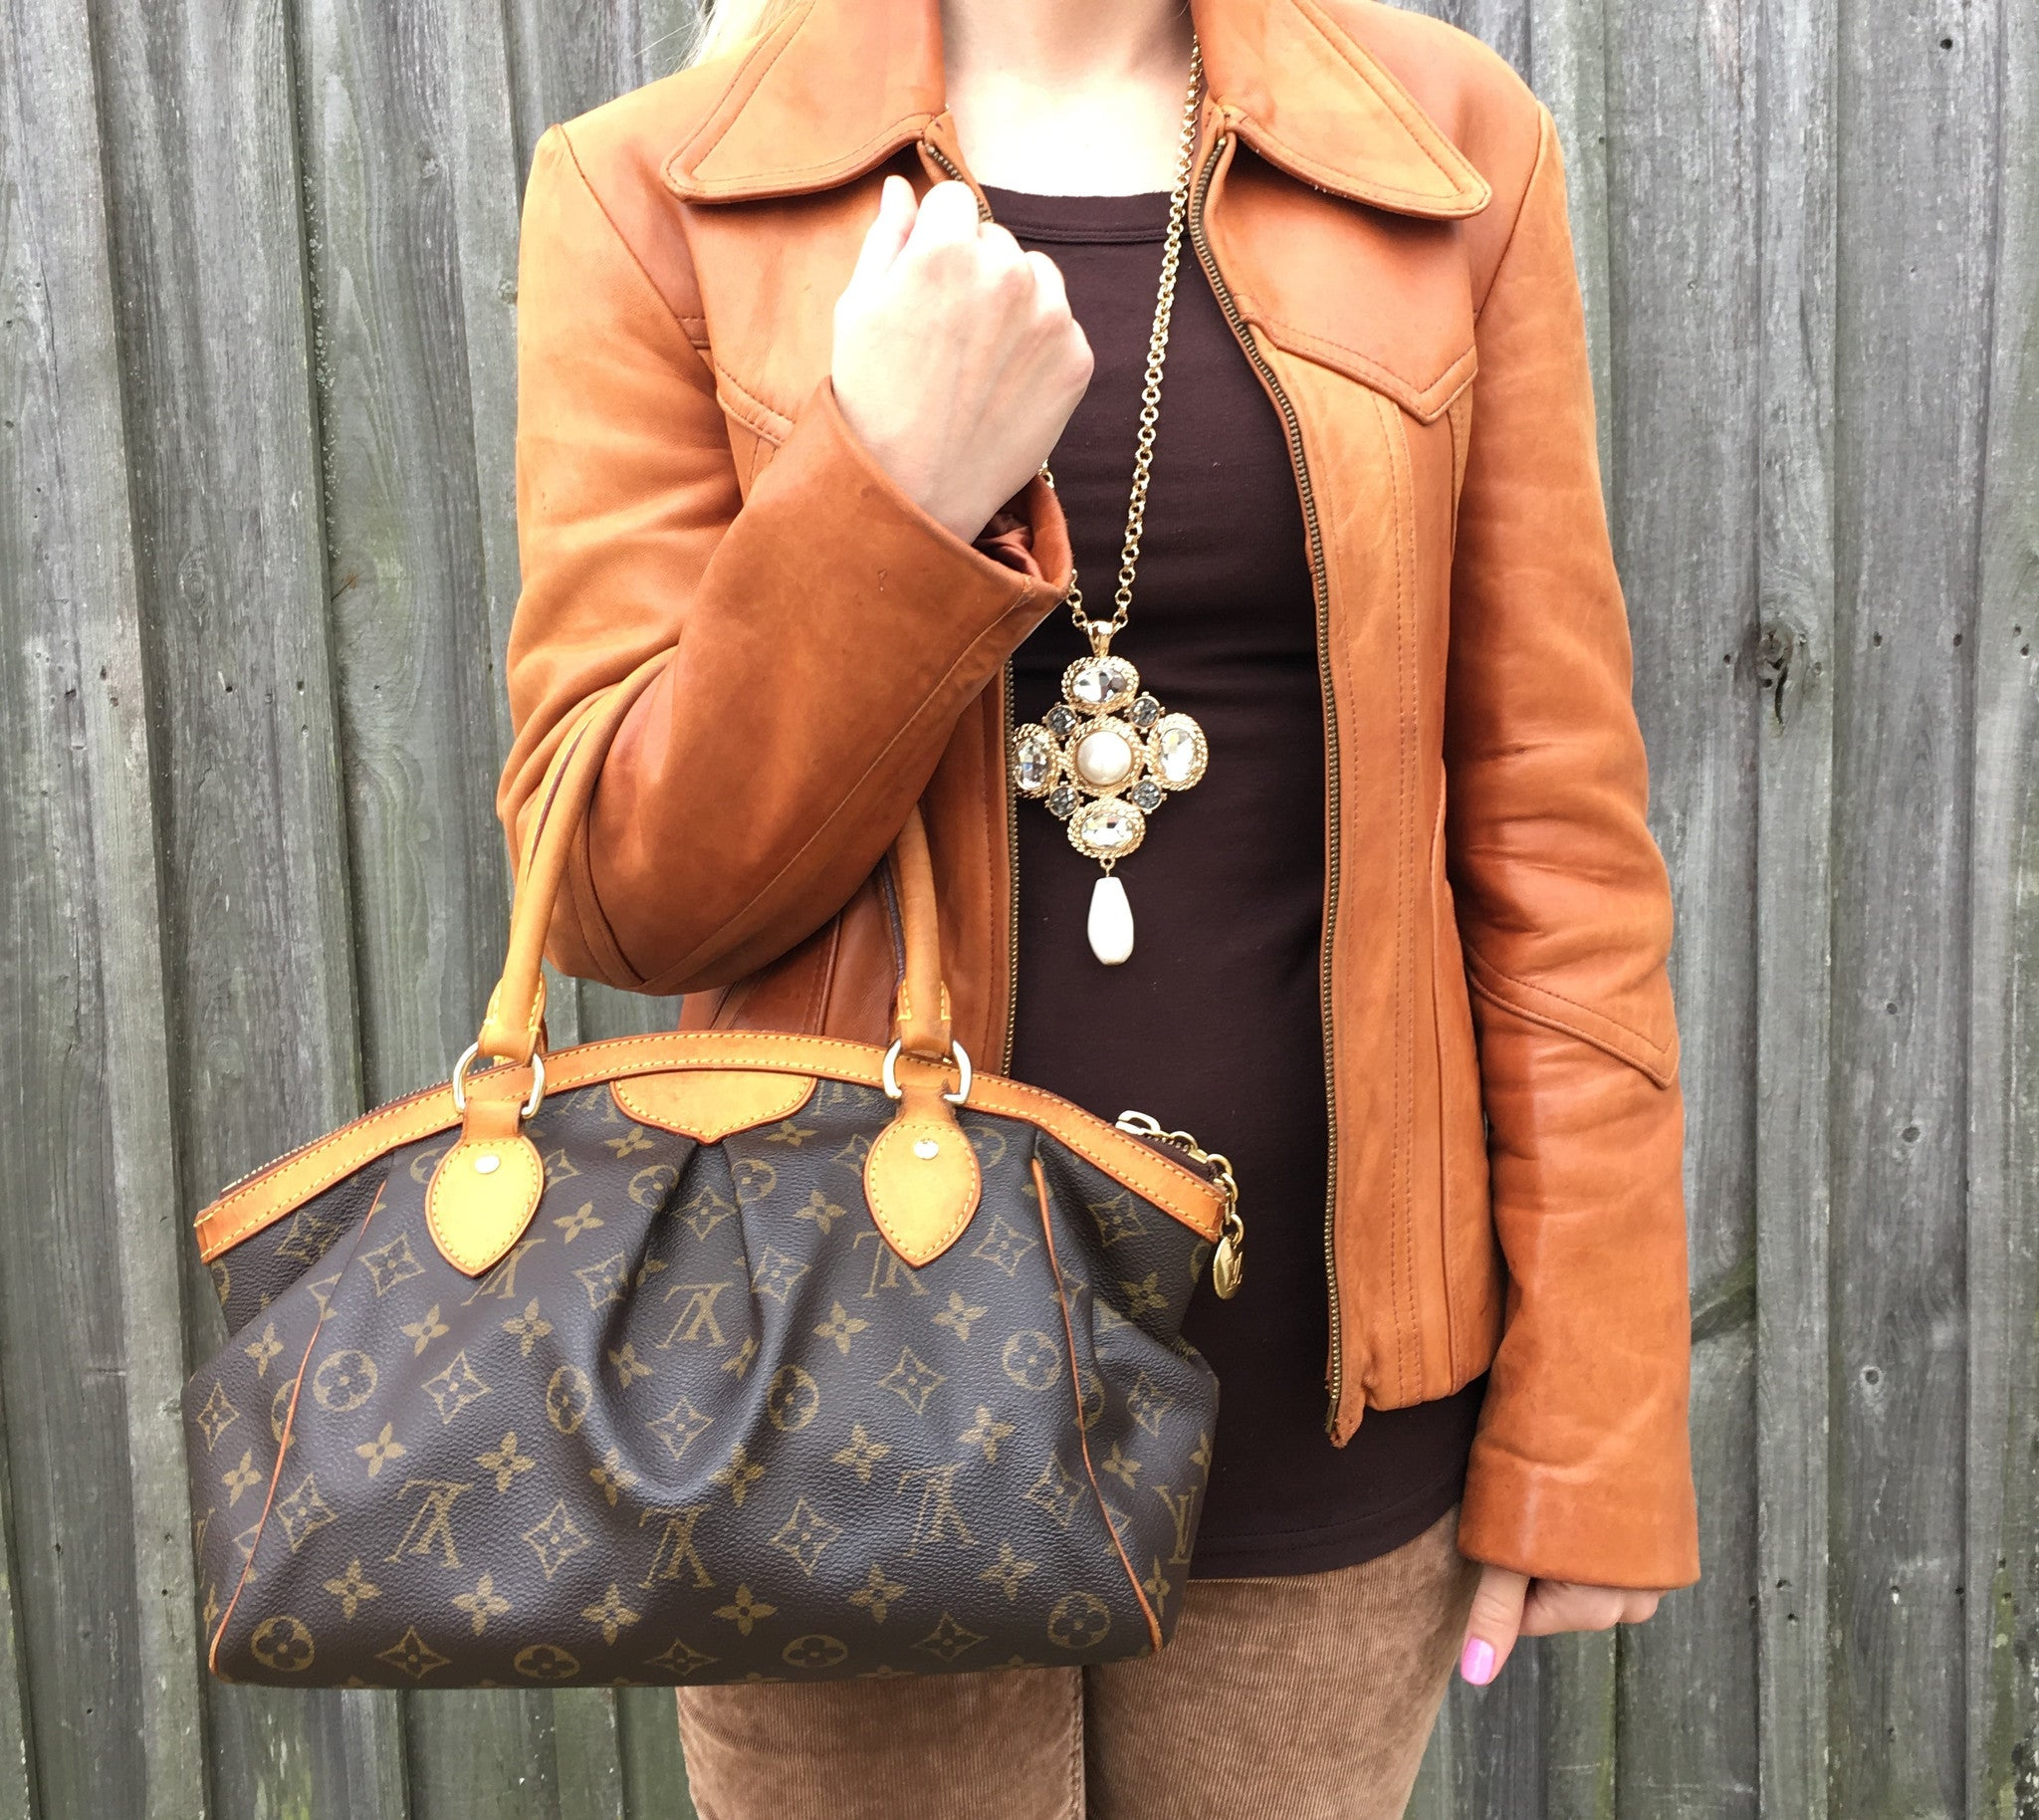 a42c6eb4d3c7 LOUIS VUITTON Monogram Tivoli PM + FREE Twilly Scarf – Pretty Things ...